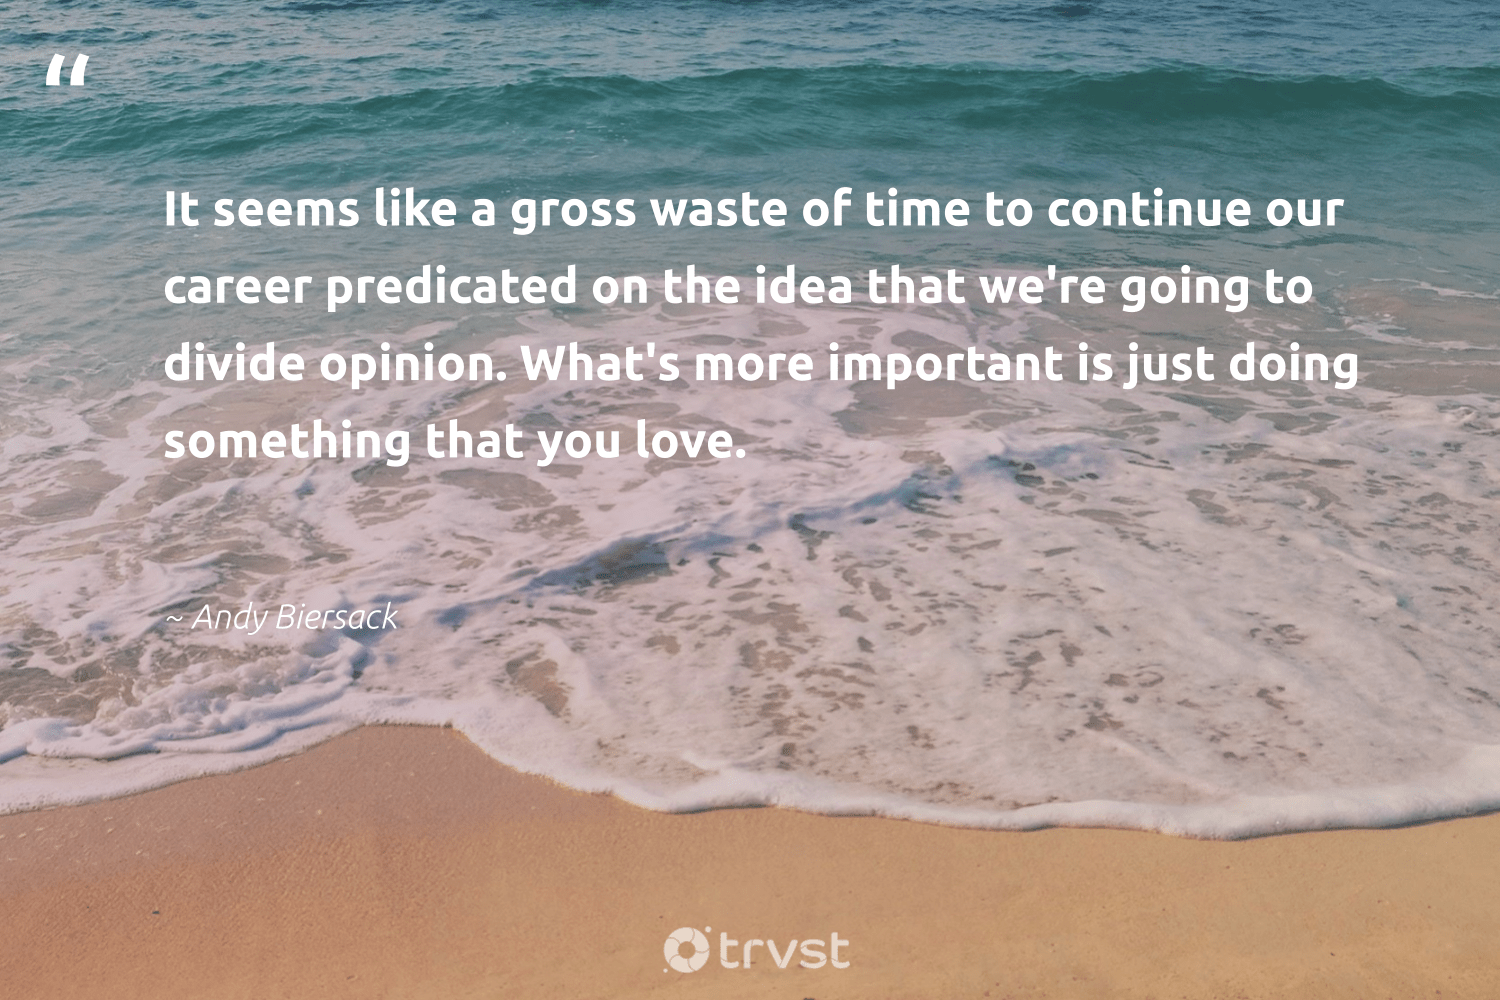 """It seems like a gross waste of time to continue our career predicated on the idea that we're going to divide opinion. What's more important is just doing something that you love.""  - Andy Biersack #trvst #quotes #love #waste #nevergiveup #dogood #futureofwork #planetearthfirst #begreat #beinspired #softskills #dosomething"